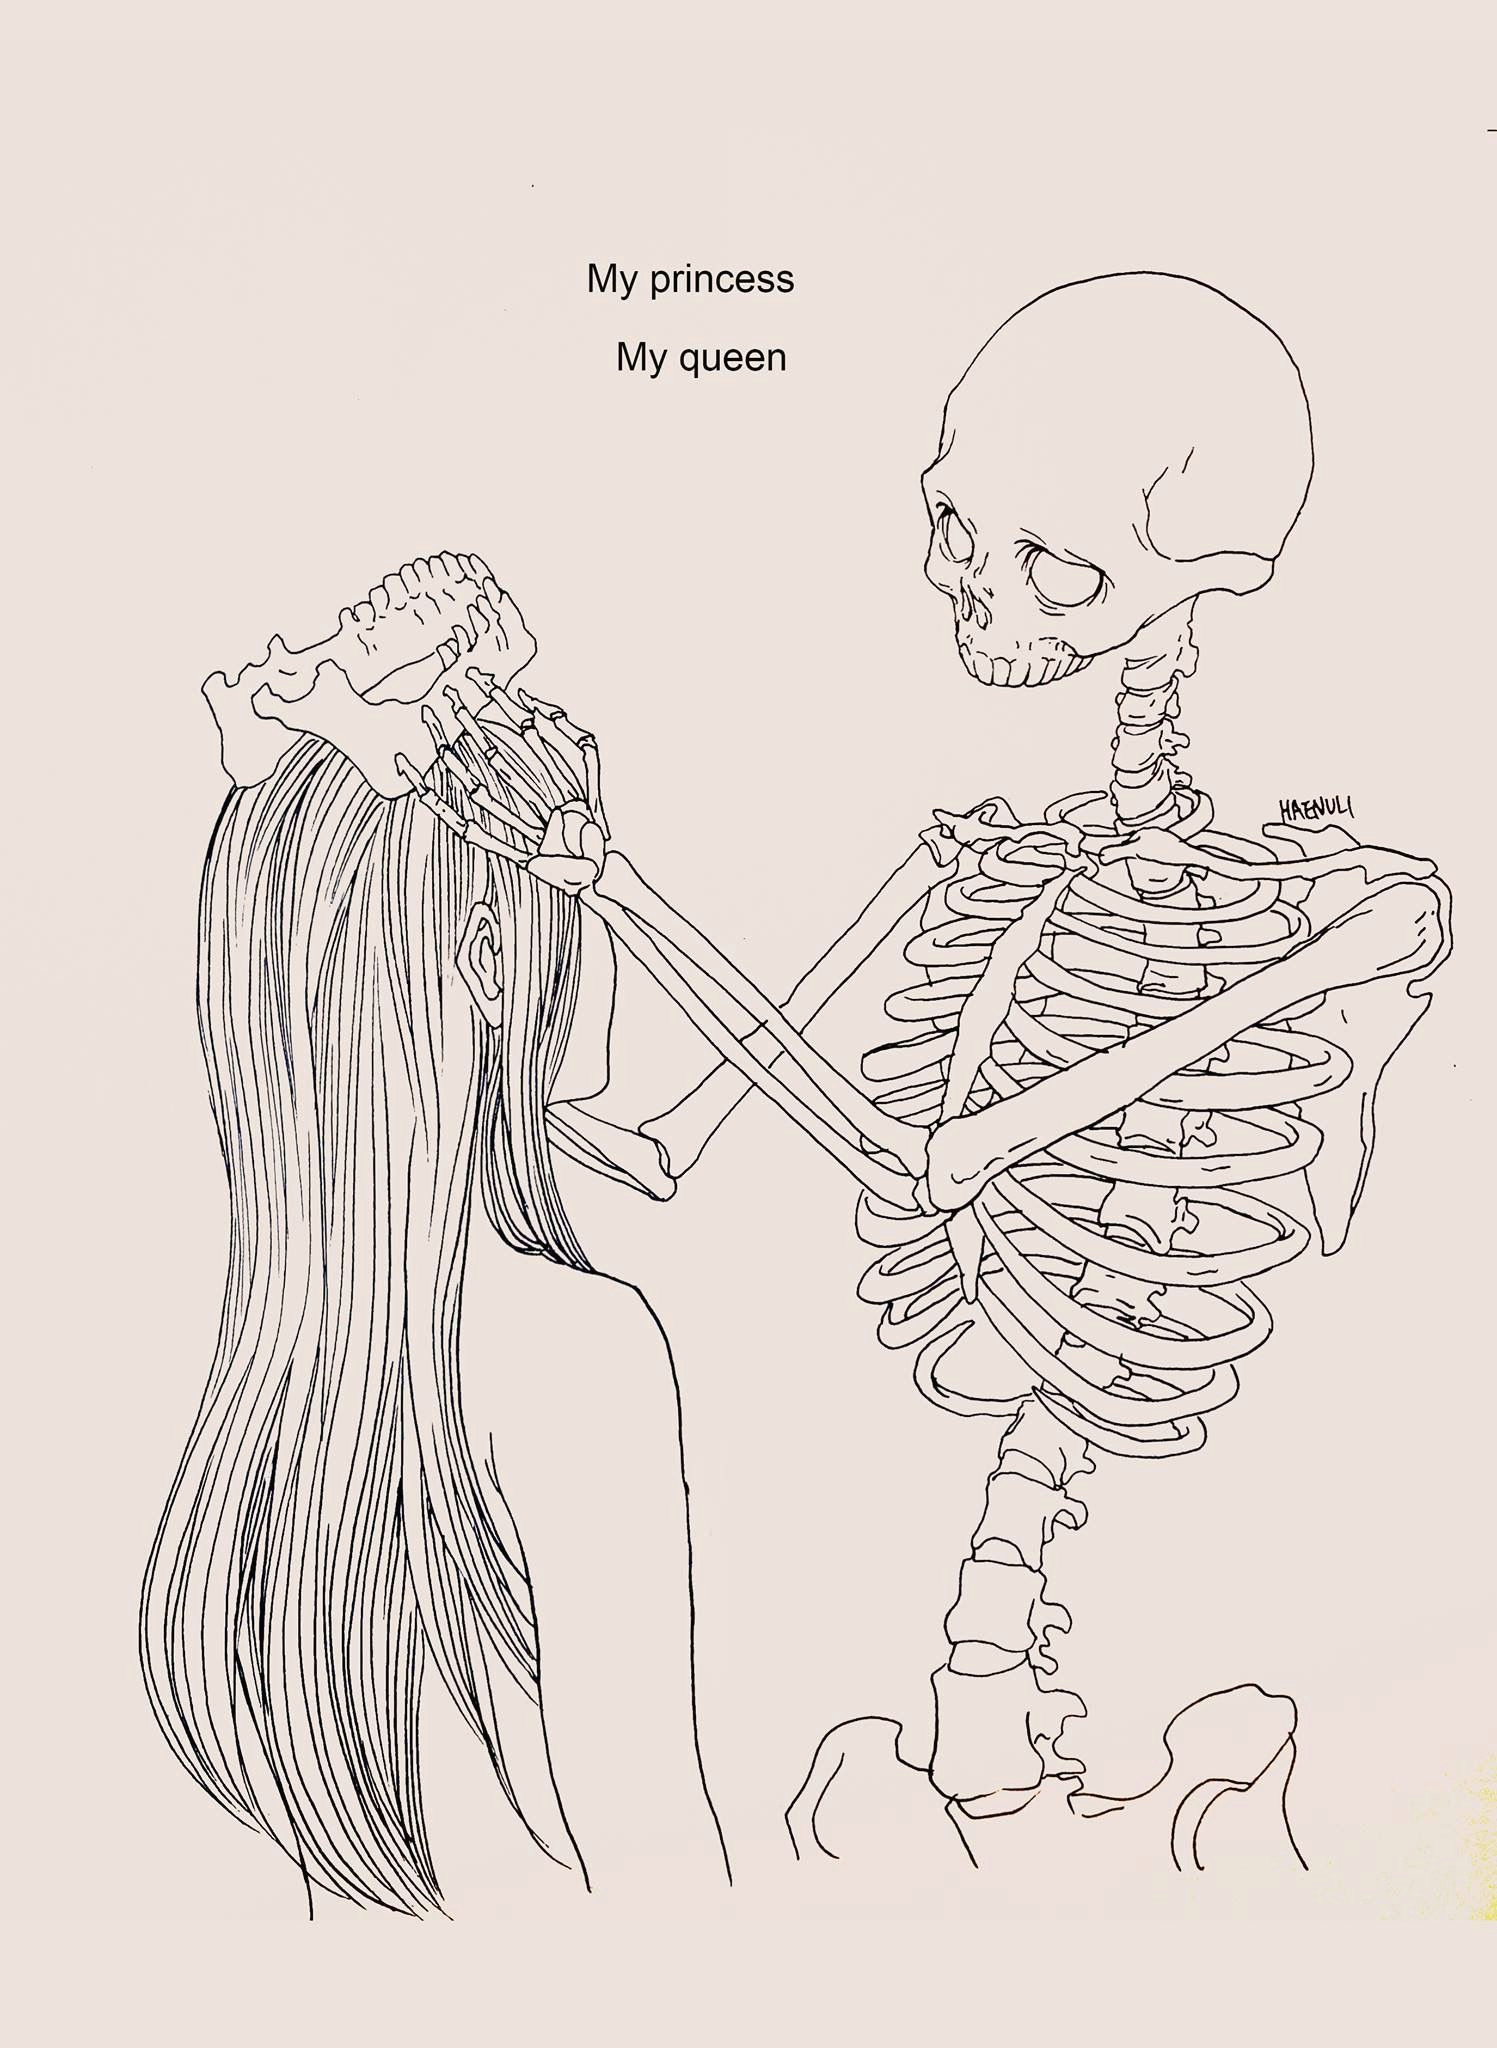 i love you drawings drawings of girls weird drawings skeleton drawings indie